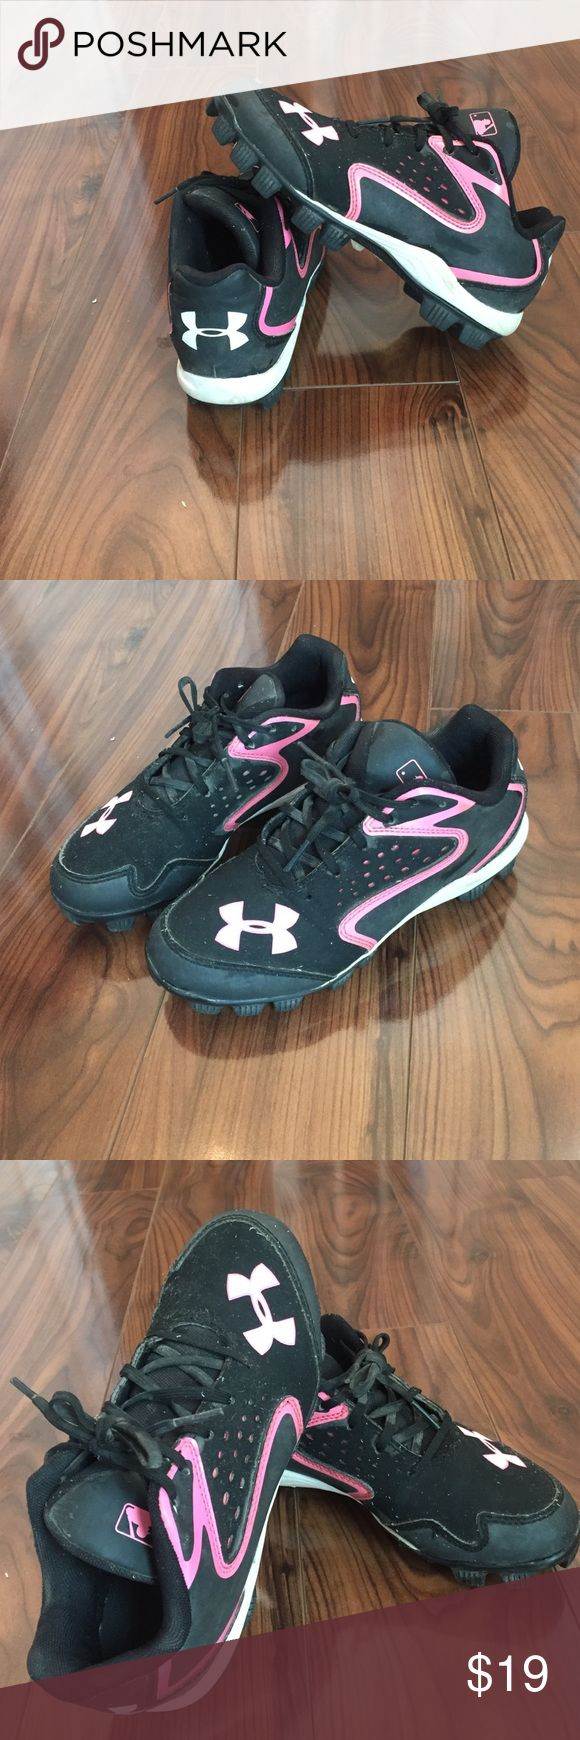 ⚾️Under Armour Cleat Sale⚾️ UA Softball Cleats- worn only one softball season! Get them fast!  Play on! Under Armour Shoes